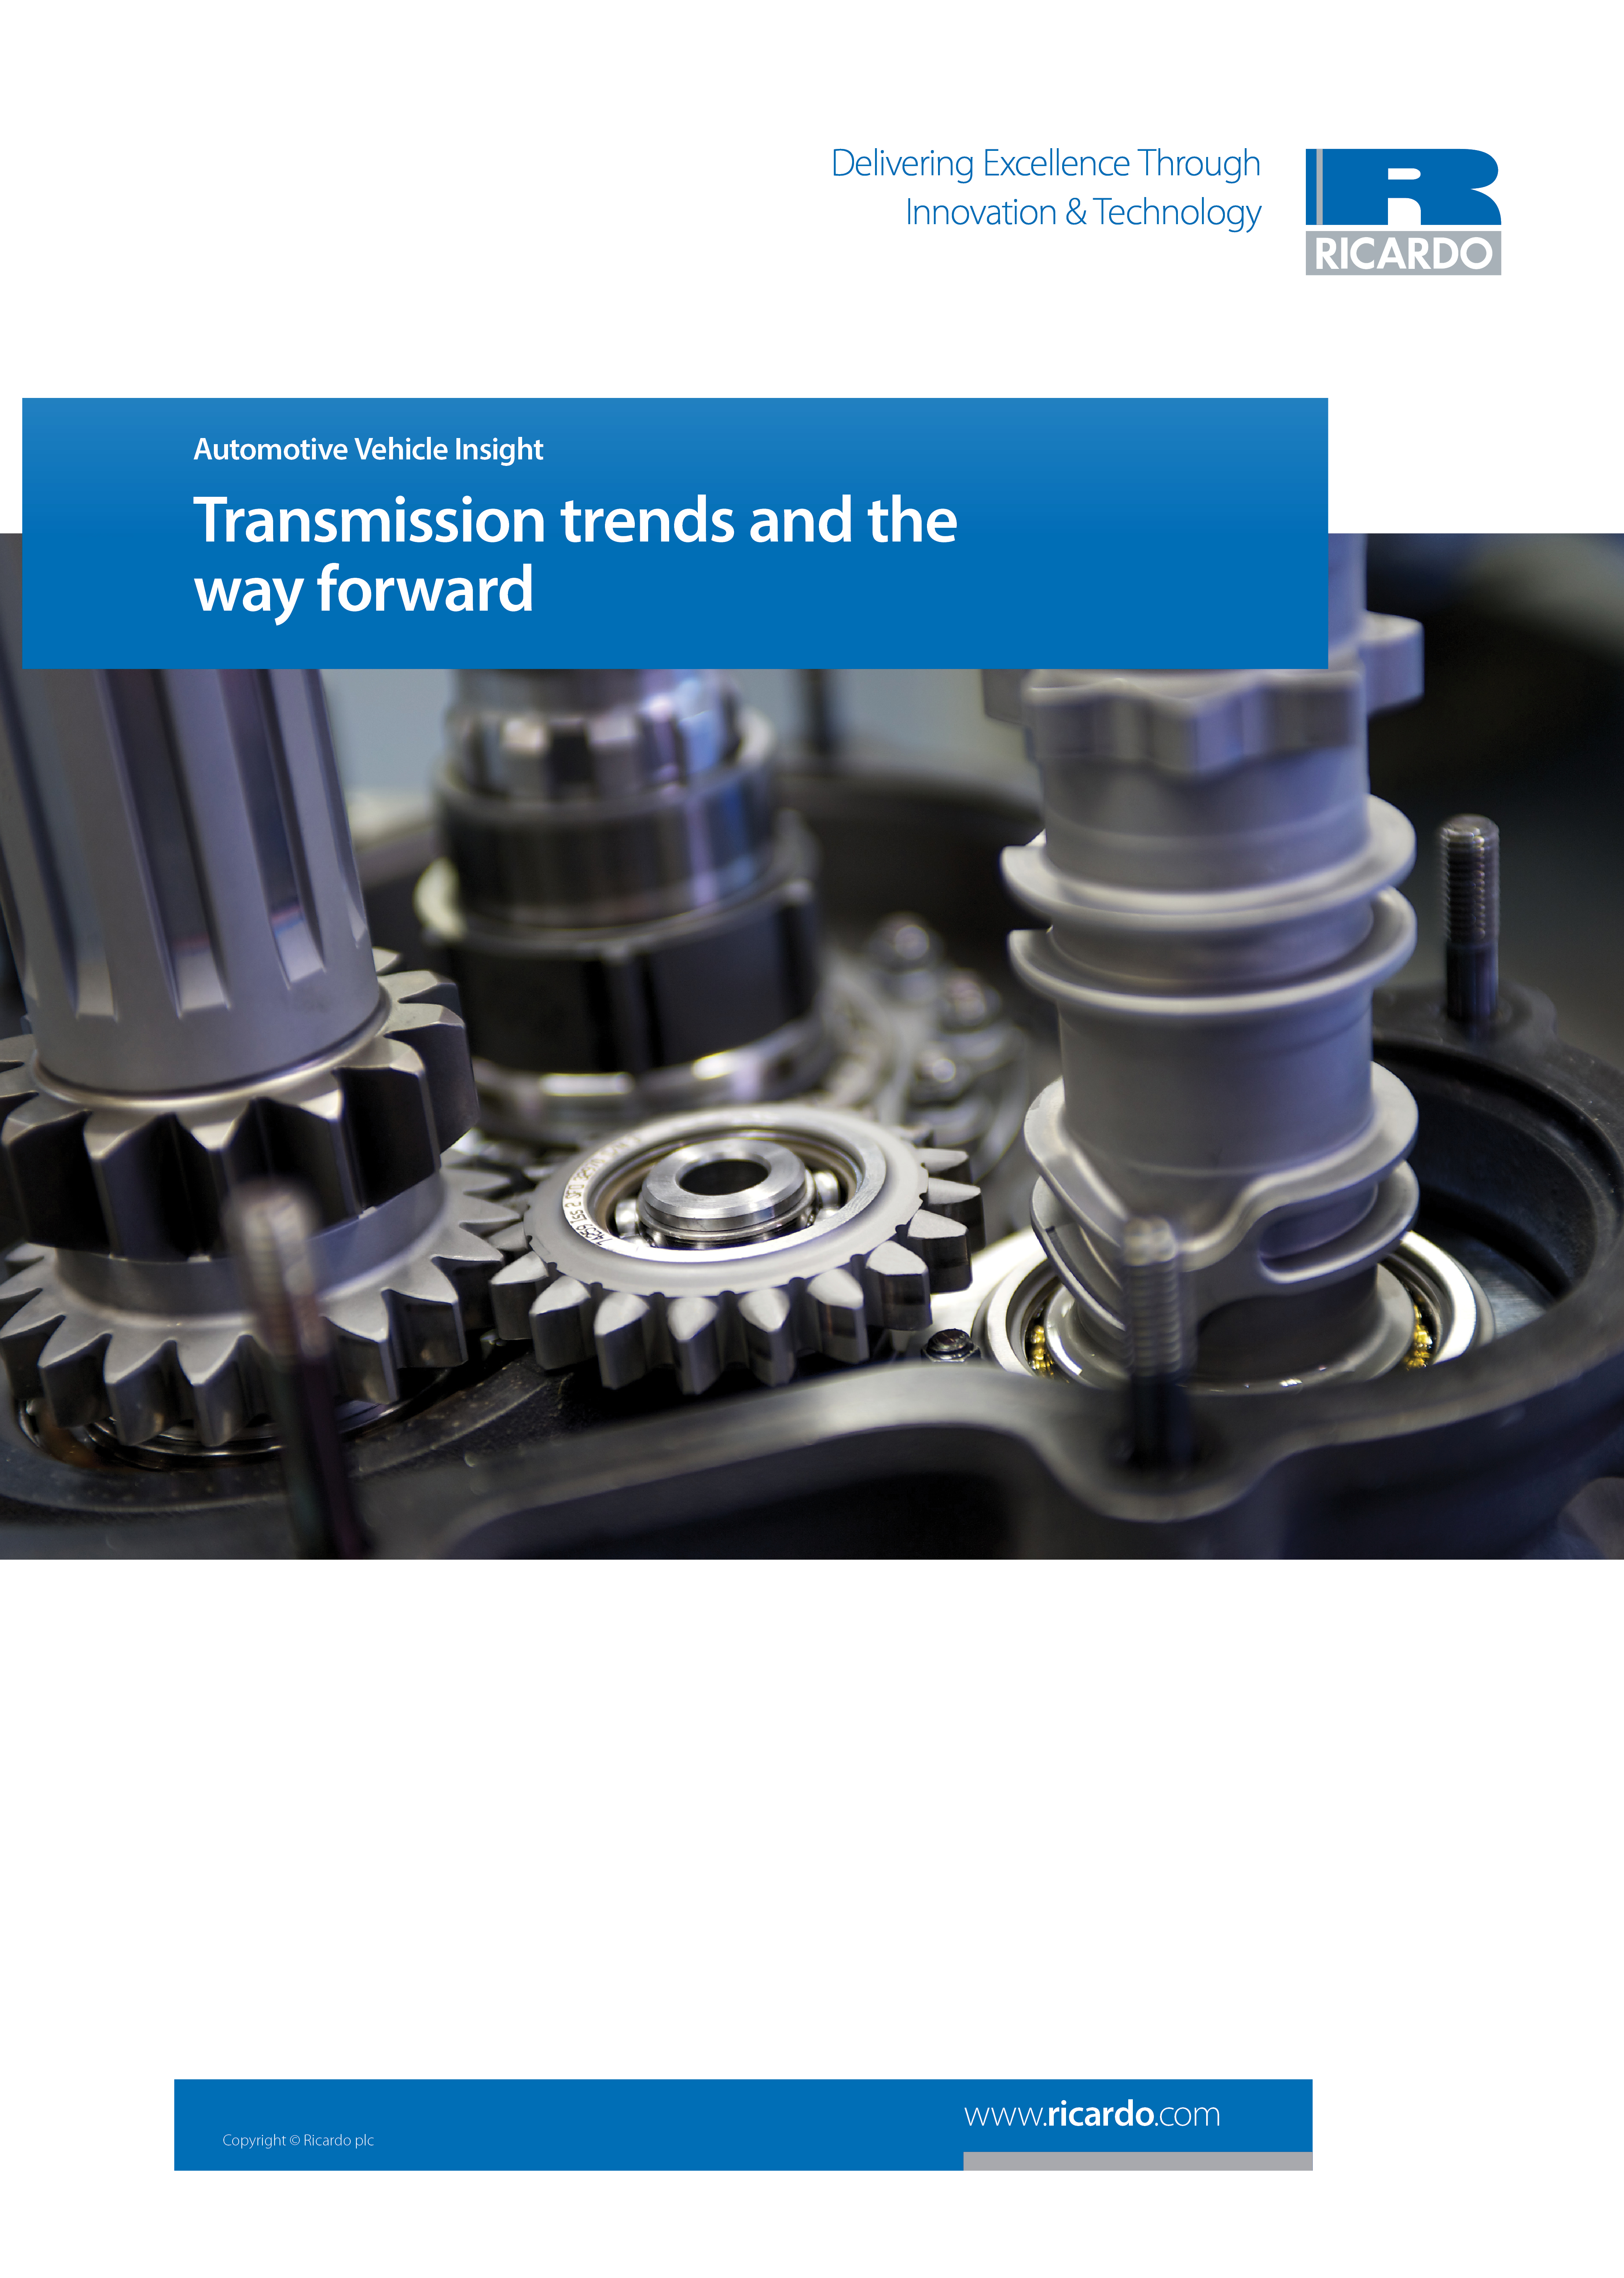 Transmission trends and the way forward